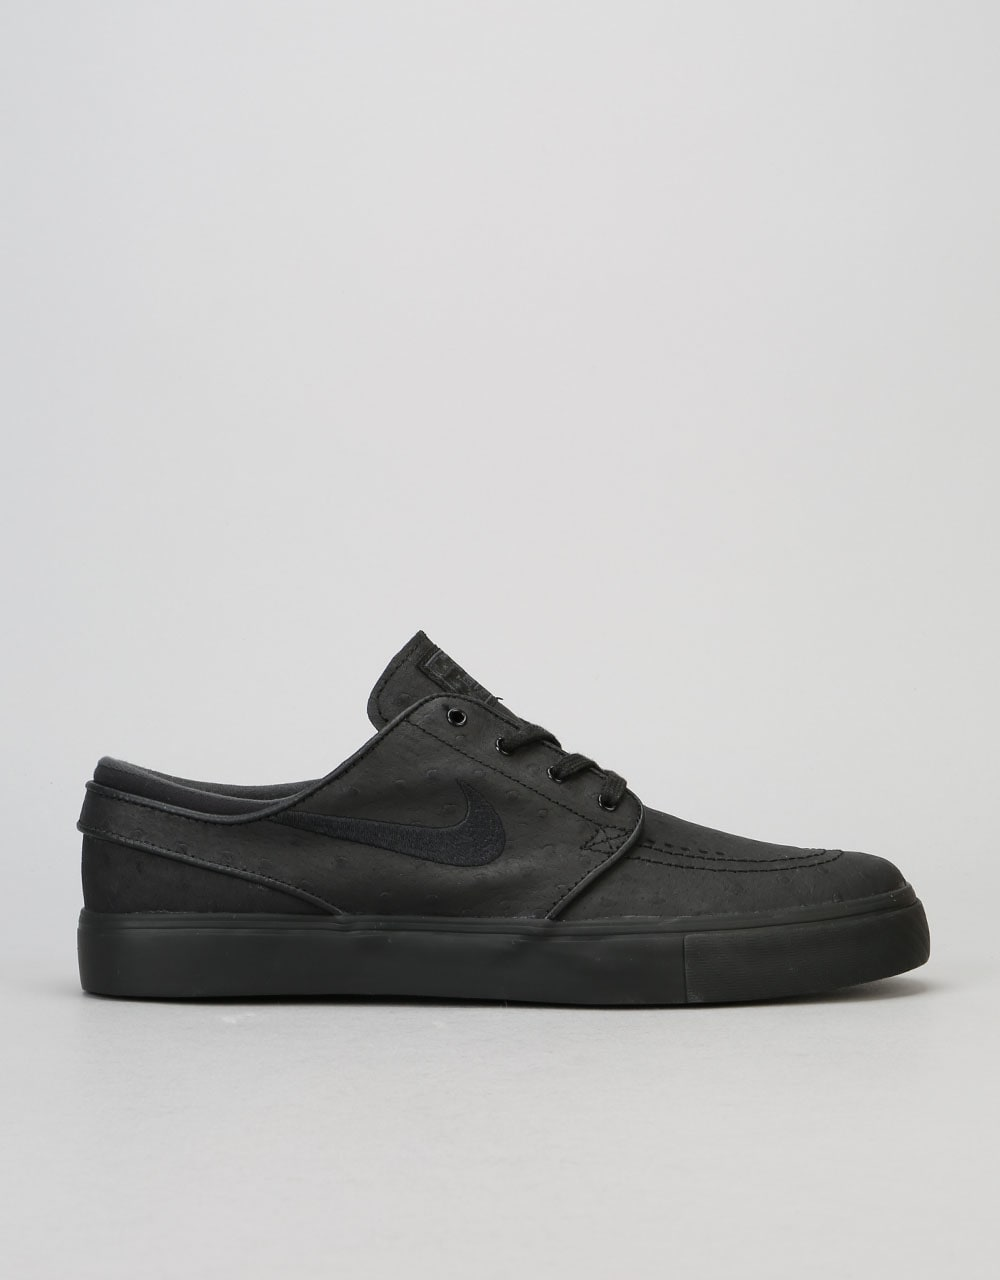 c2269ce28366a Nike SB Zoom Stefan Janoski Leather Skate Shoes - Black Anthracite ...